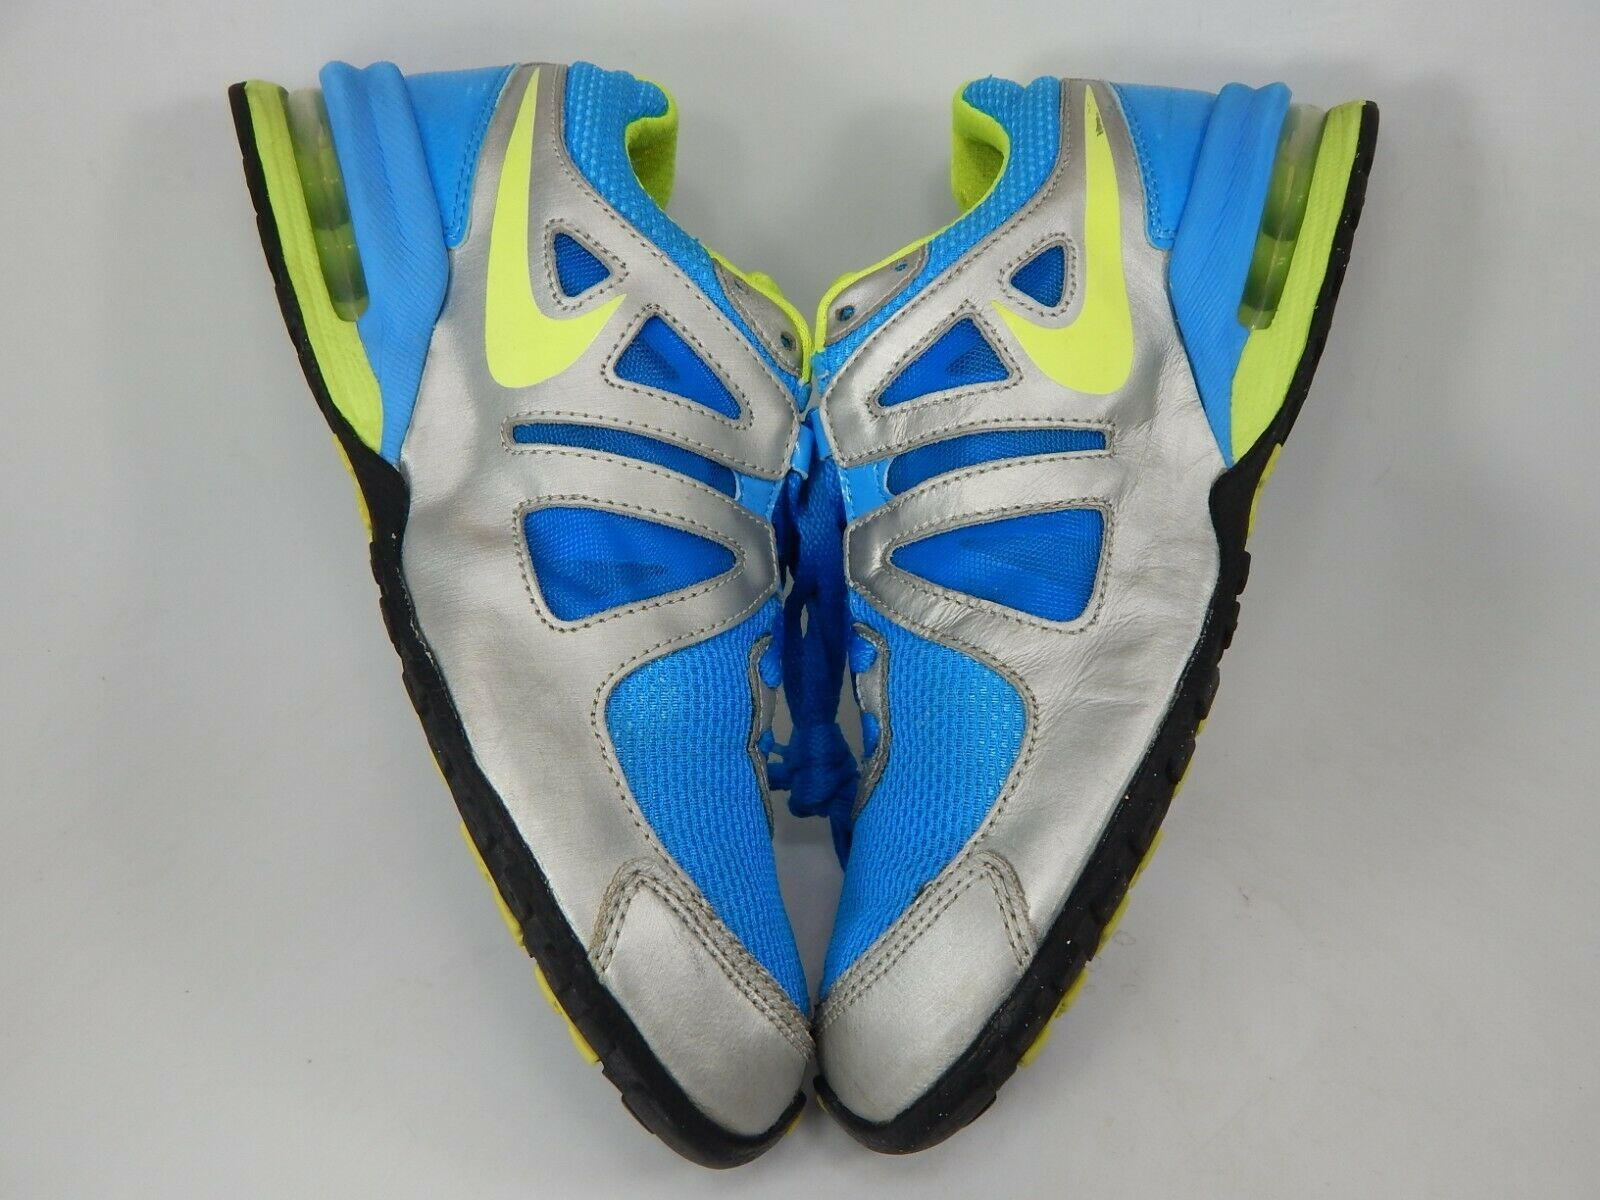 Nike Air Max Limitless Size 8 M (B) EU 39 Women's Running Shoes Blue 454241-401